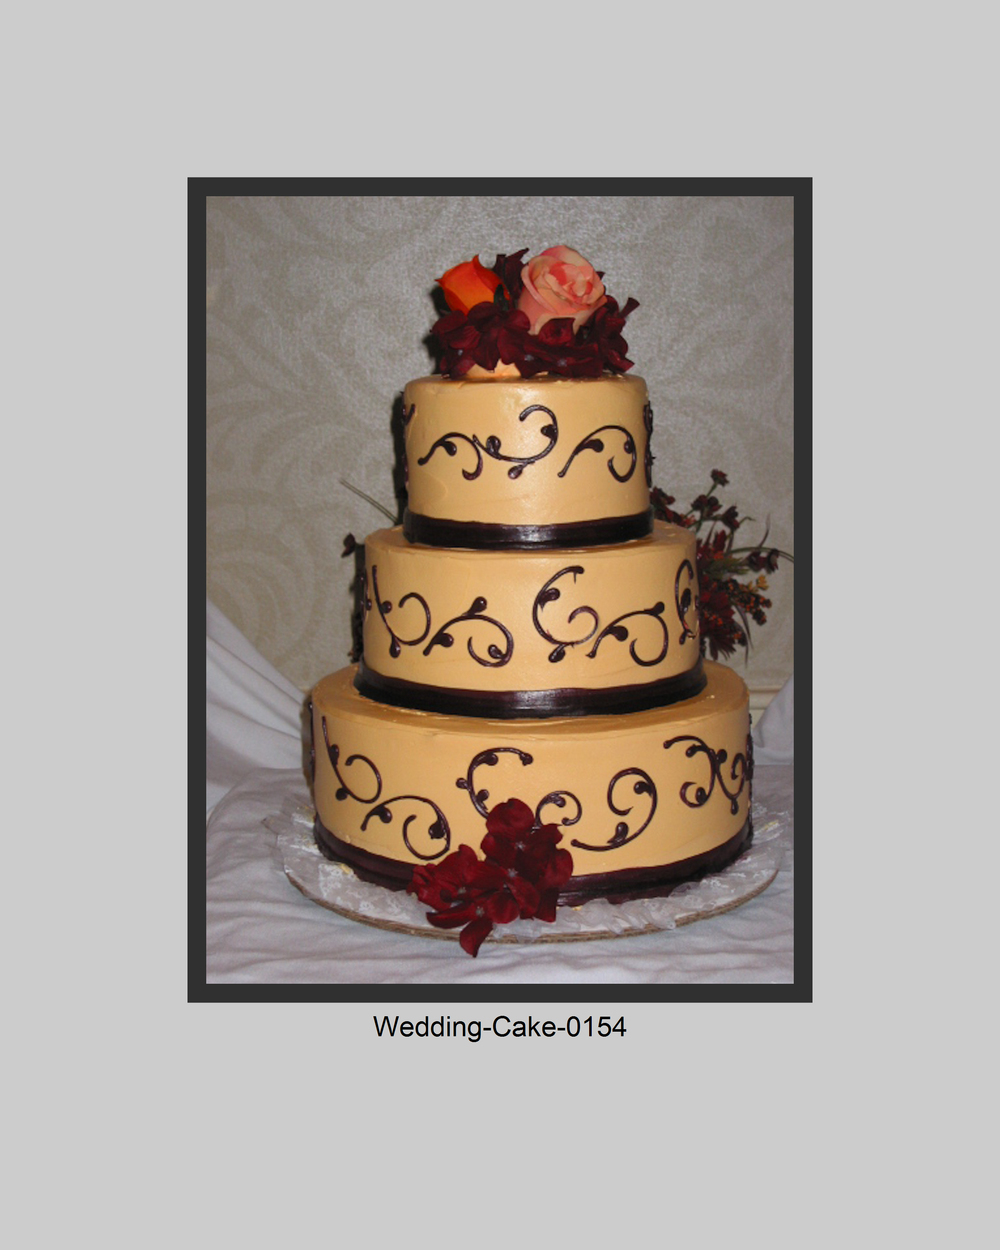 Wedding-Cake-Prints-0154.jpg